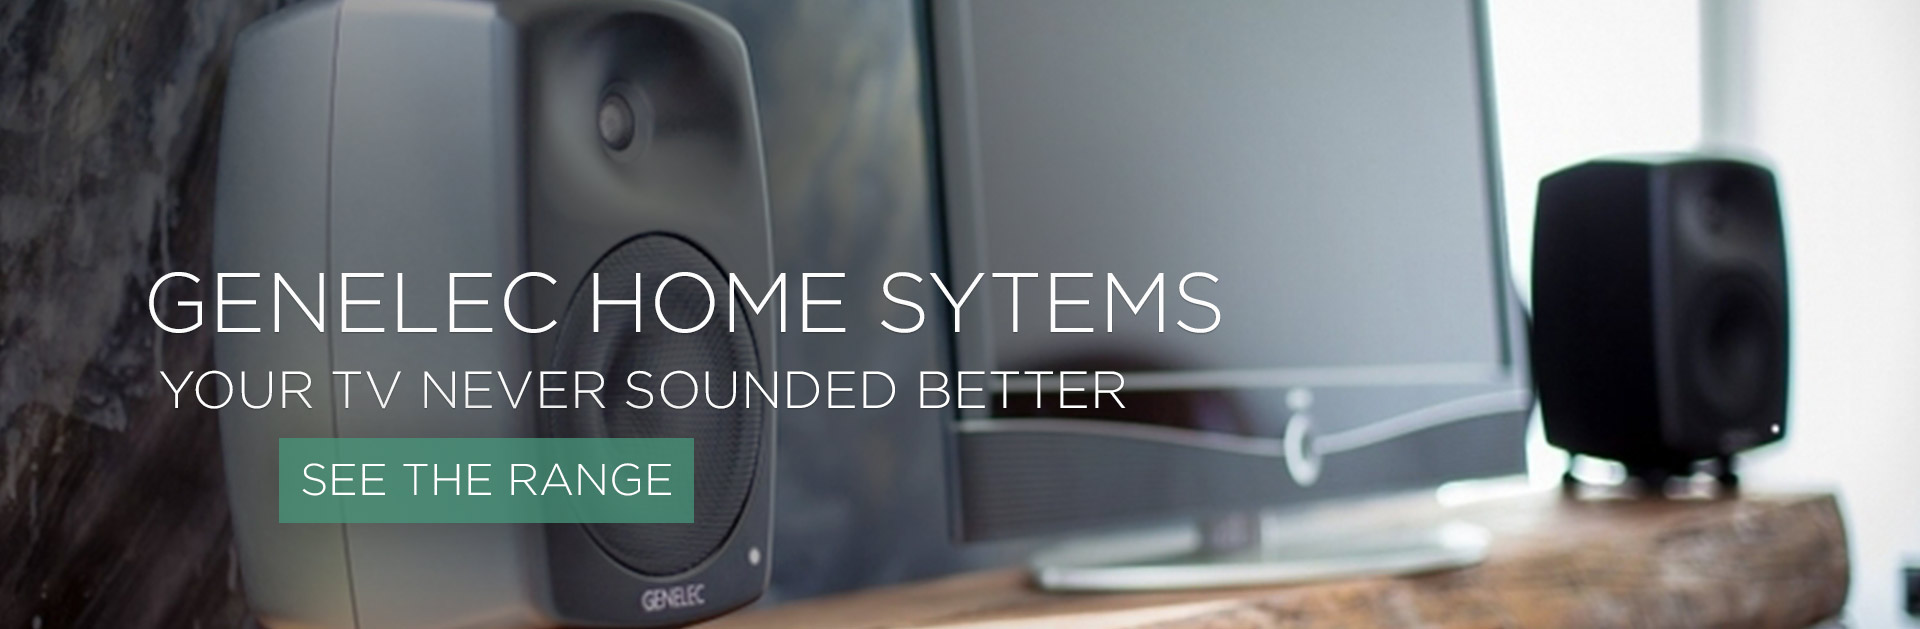 GENELEC G SERIES HOME SYSTEMS FOR TV AND HIFI